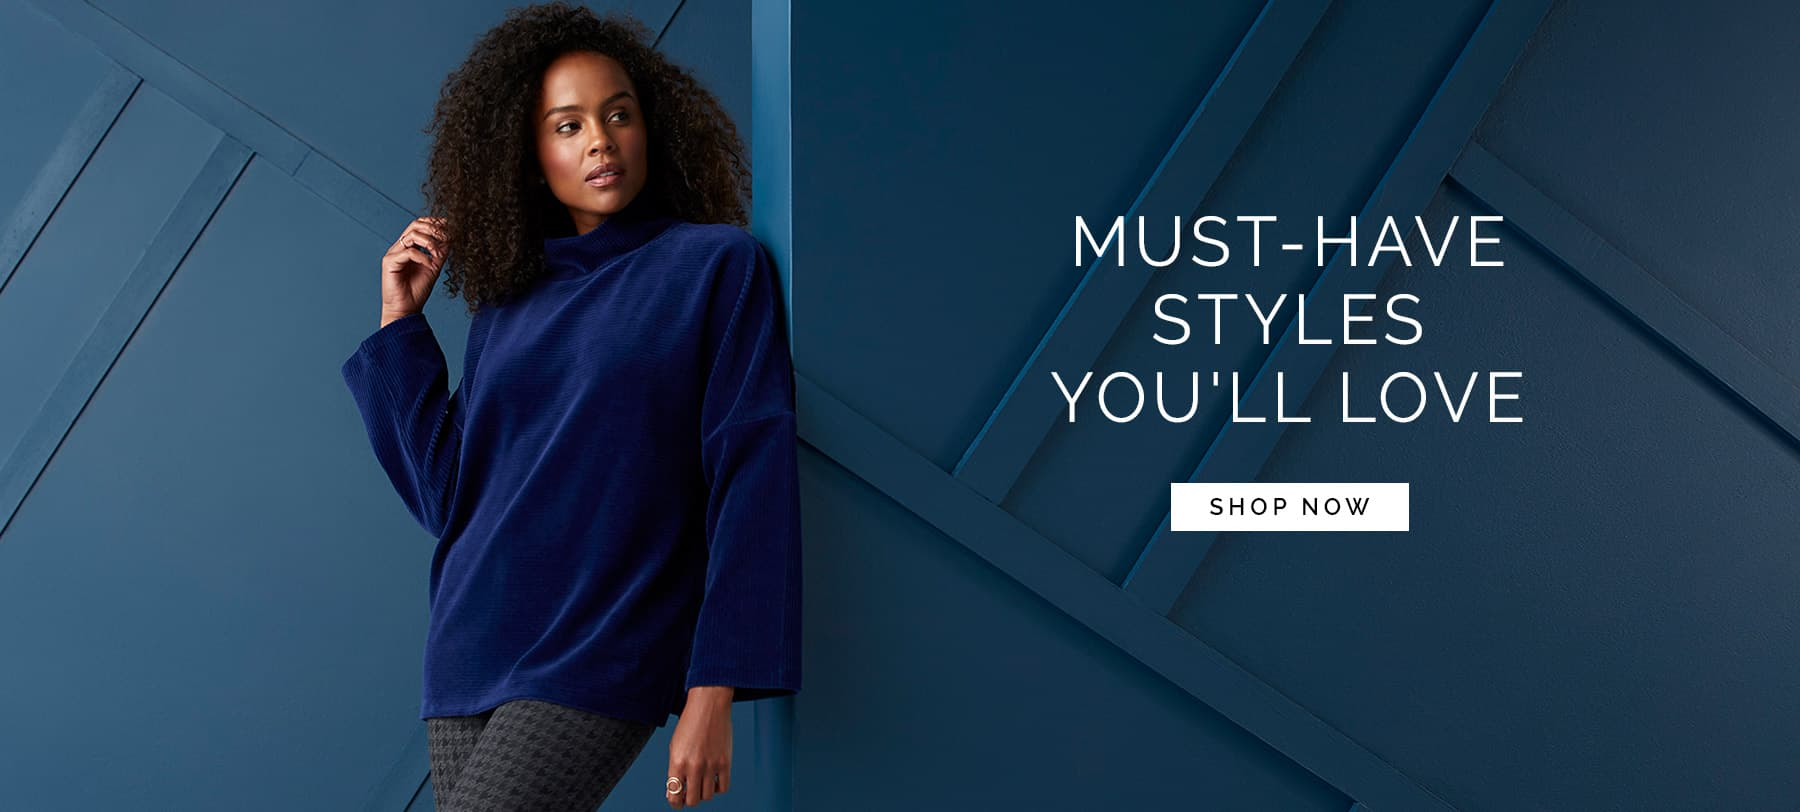 MUST-HAVE STYLES YOU'LL LOVE - Shop Now